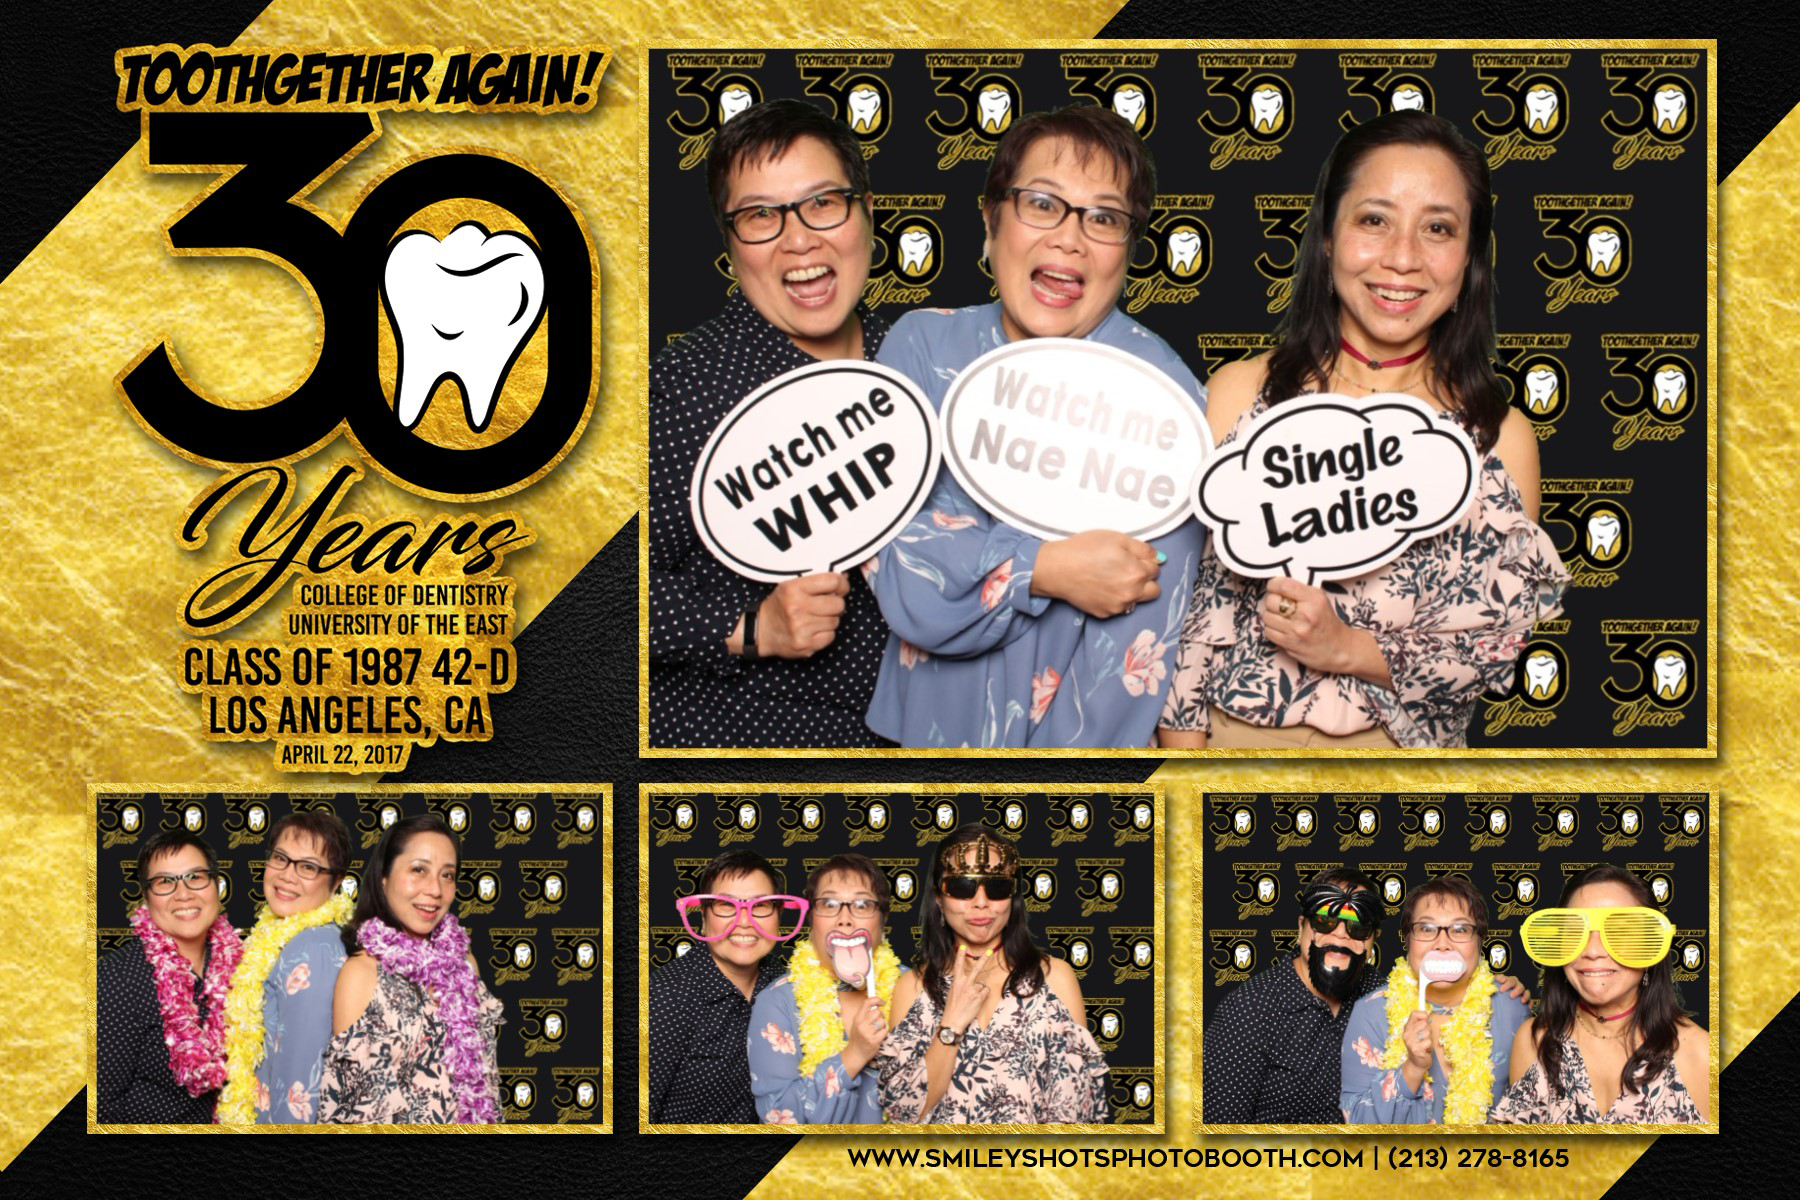 30th Years Dental UE Smiley Shots Photo Booth Photobooth (29).png